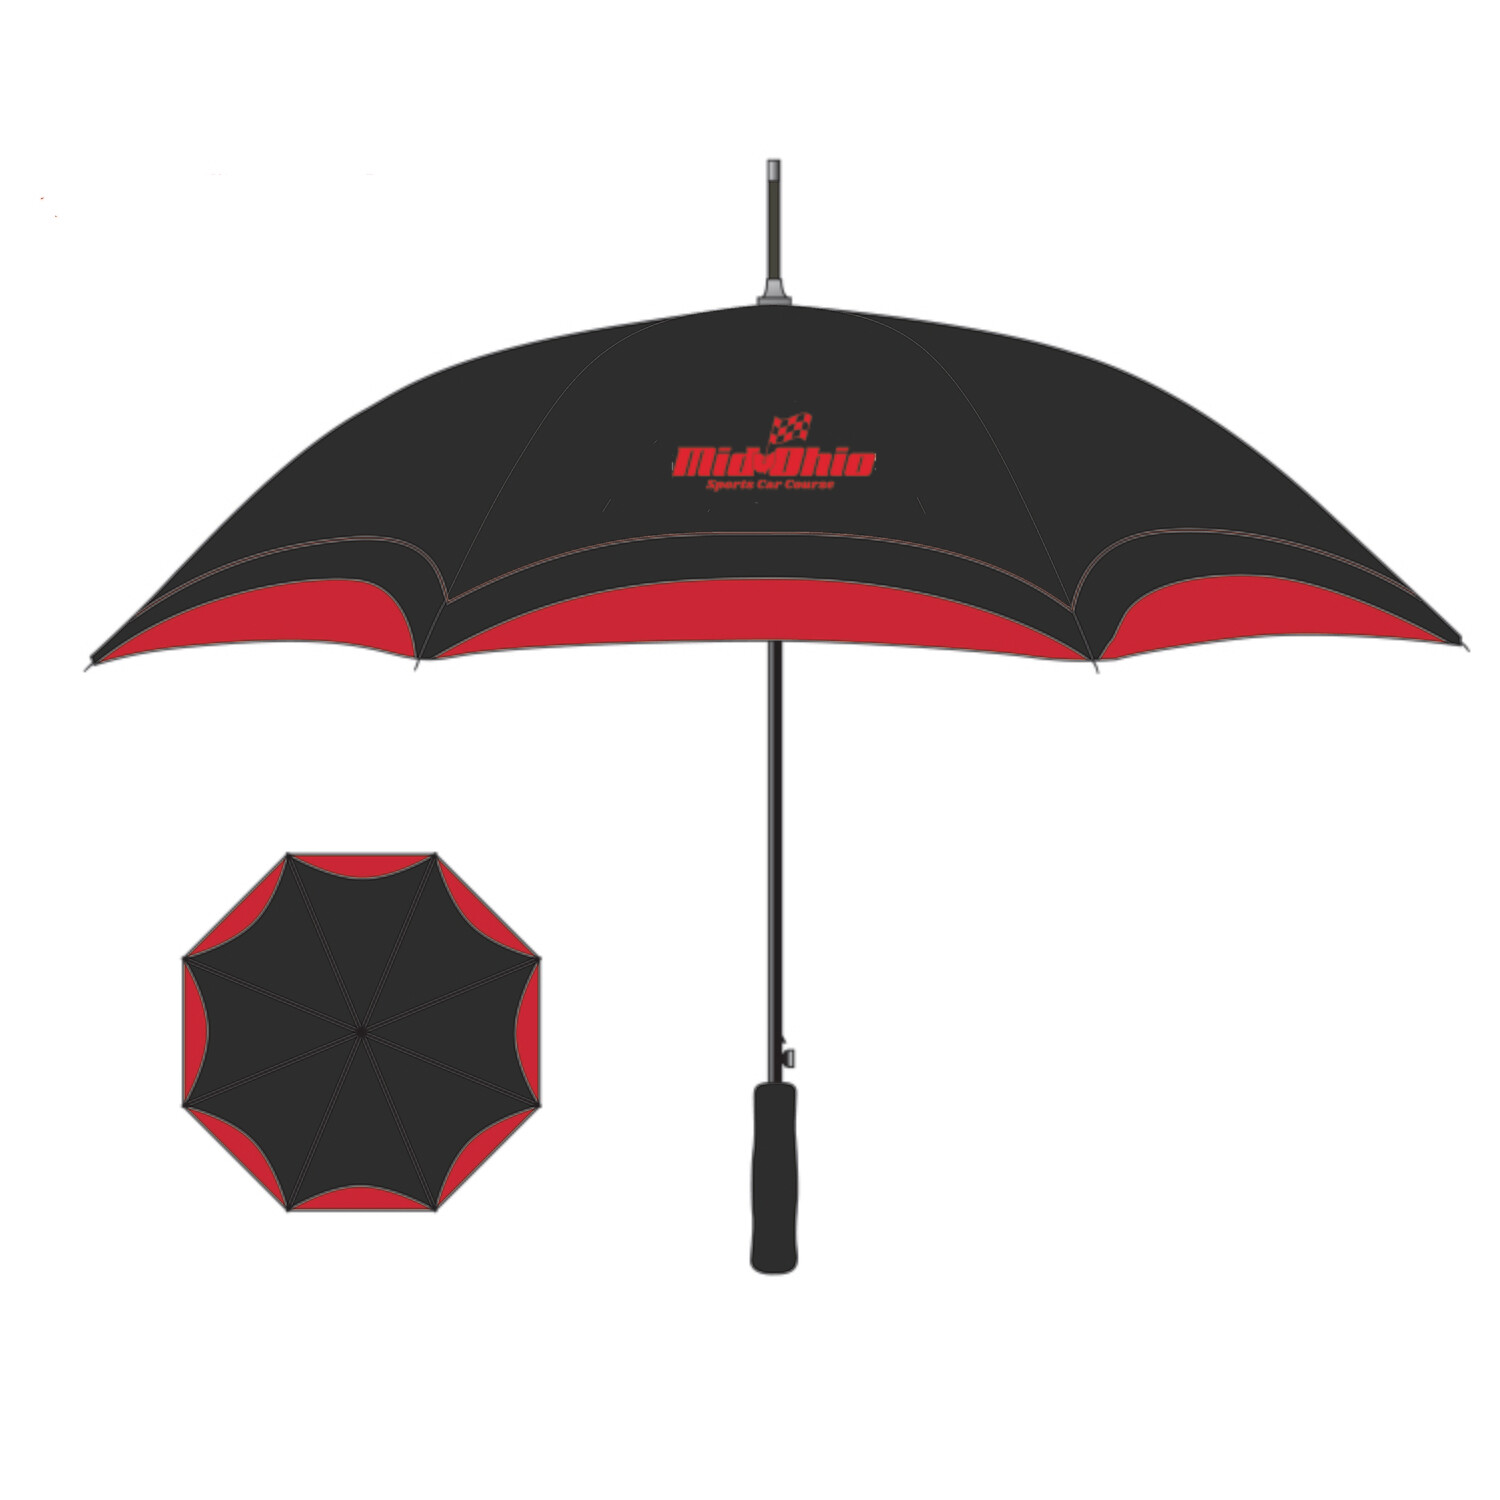 "Mid-Ohio Umbrella - Black/Red 46"" Arc"